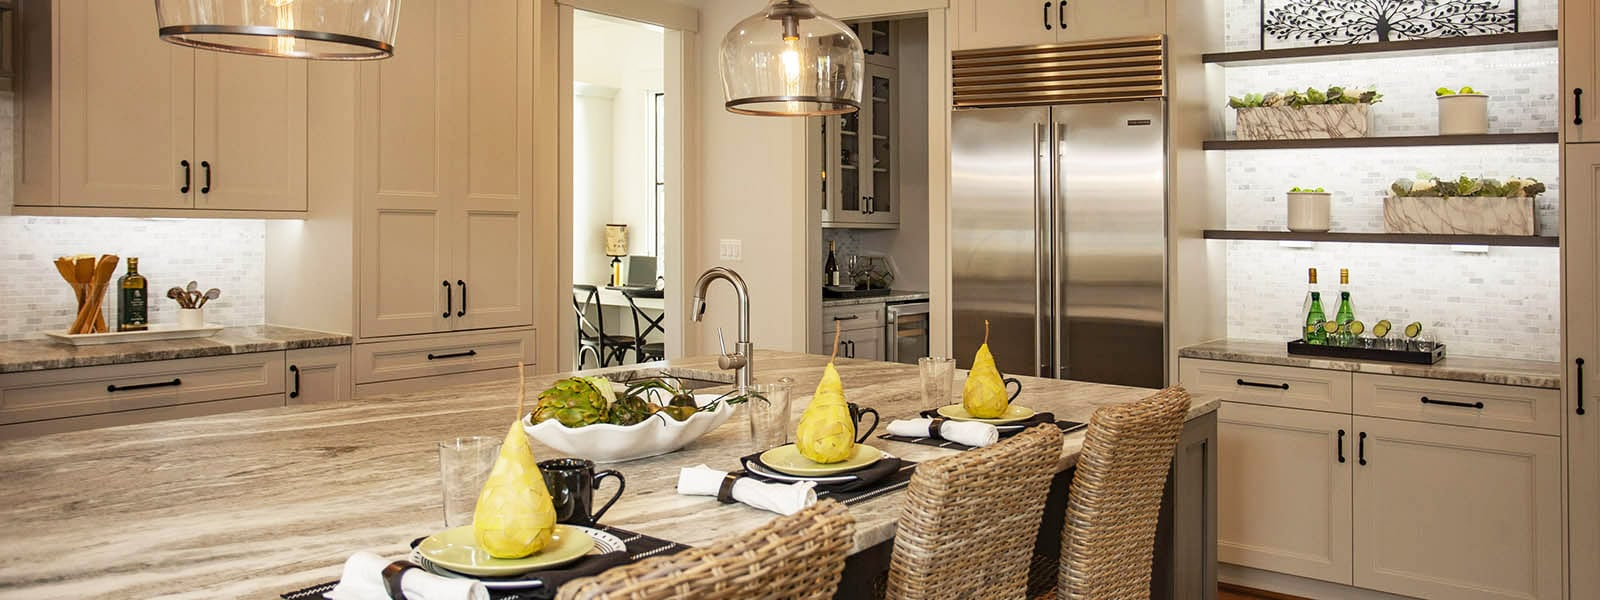 Modern kitchen island set with yellow pears.